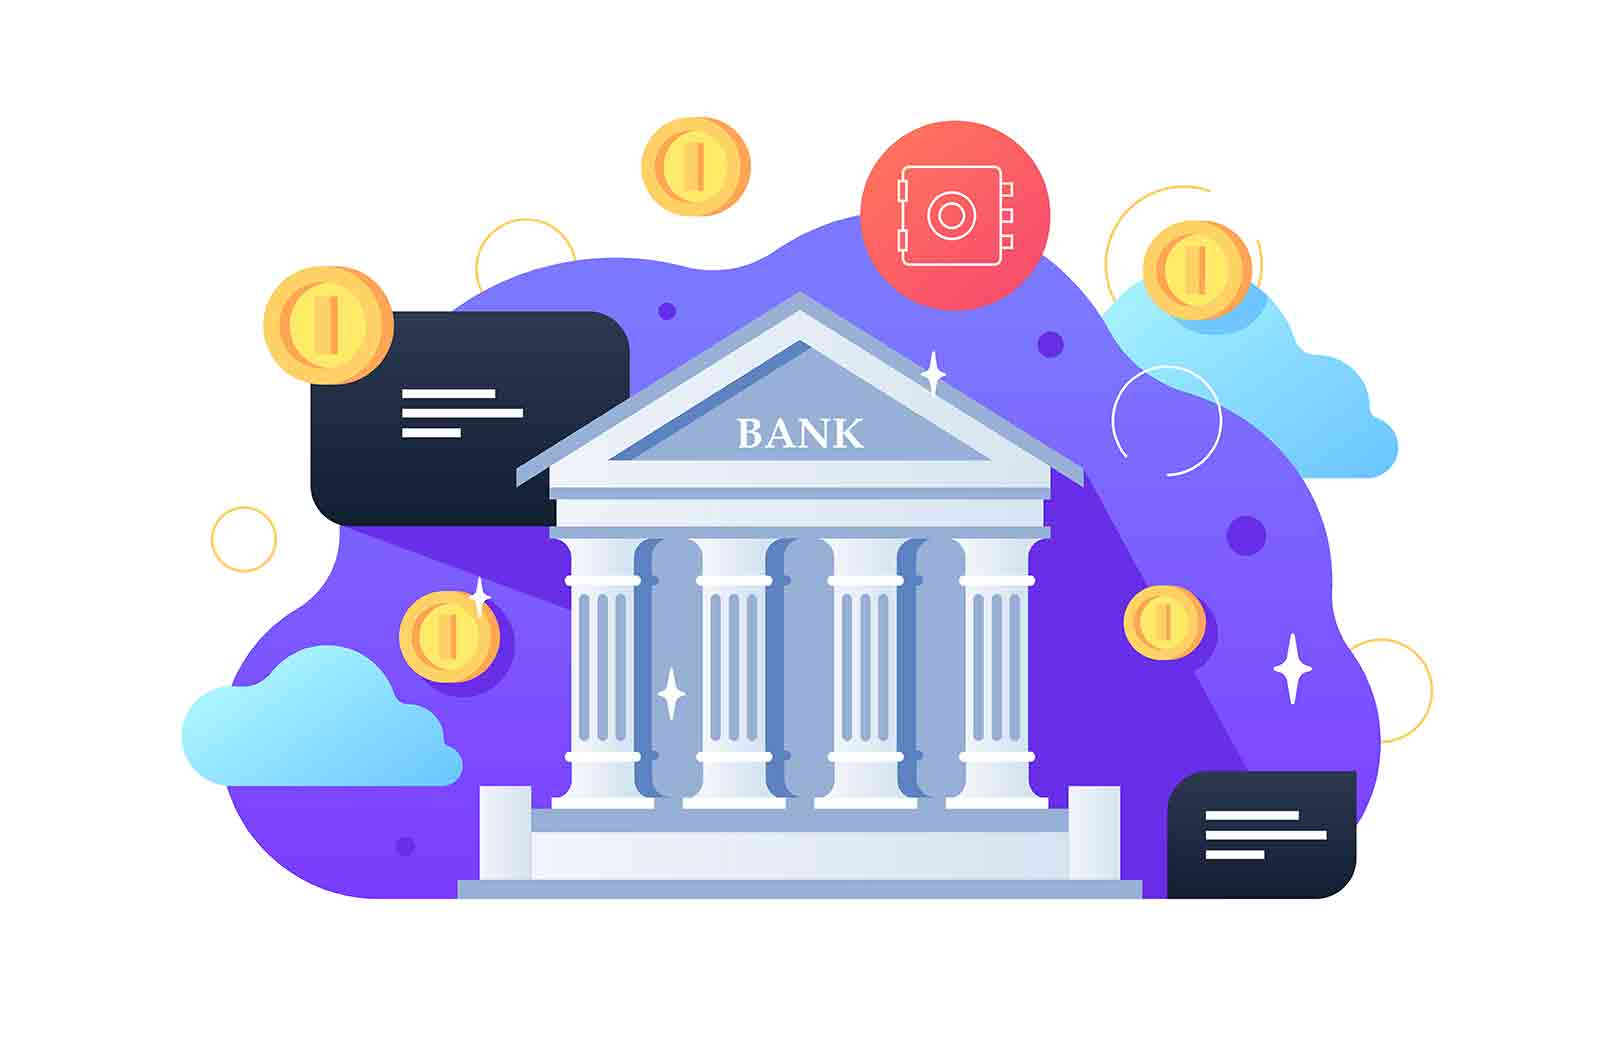 Bank building and coins vector illustration. Architecture building with columns flat style. Money exchange and financial services concept.